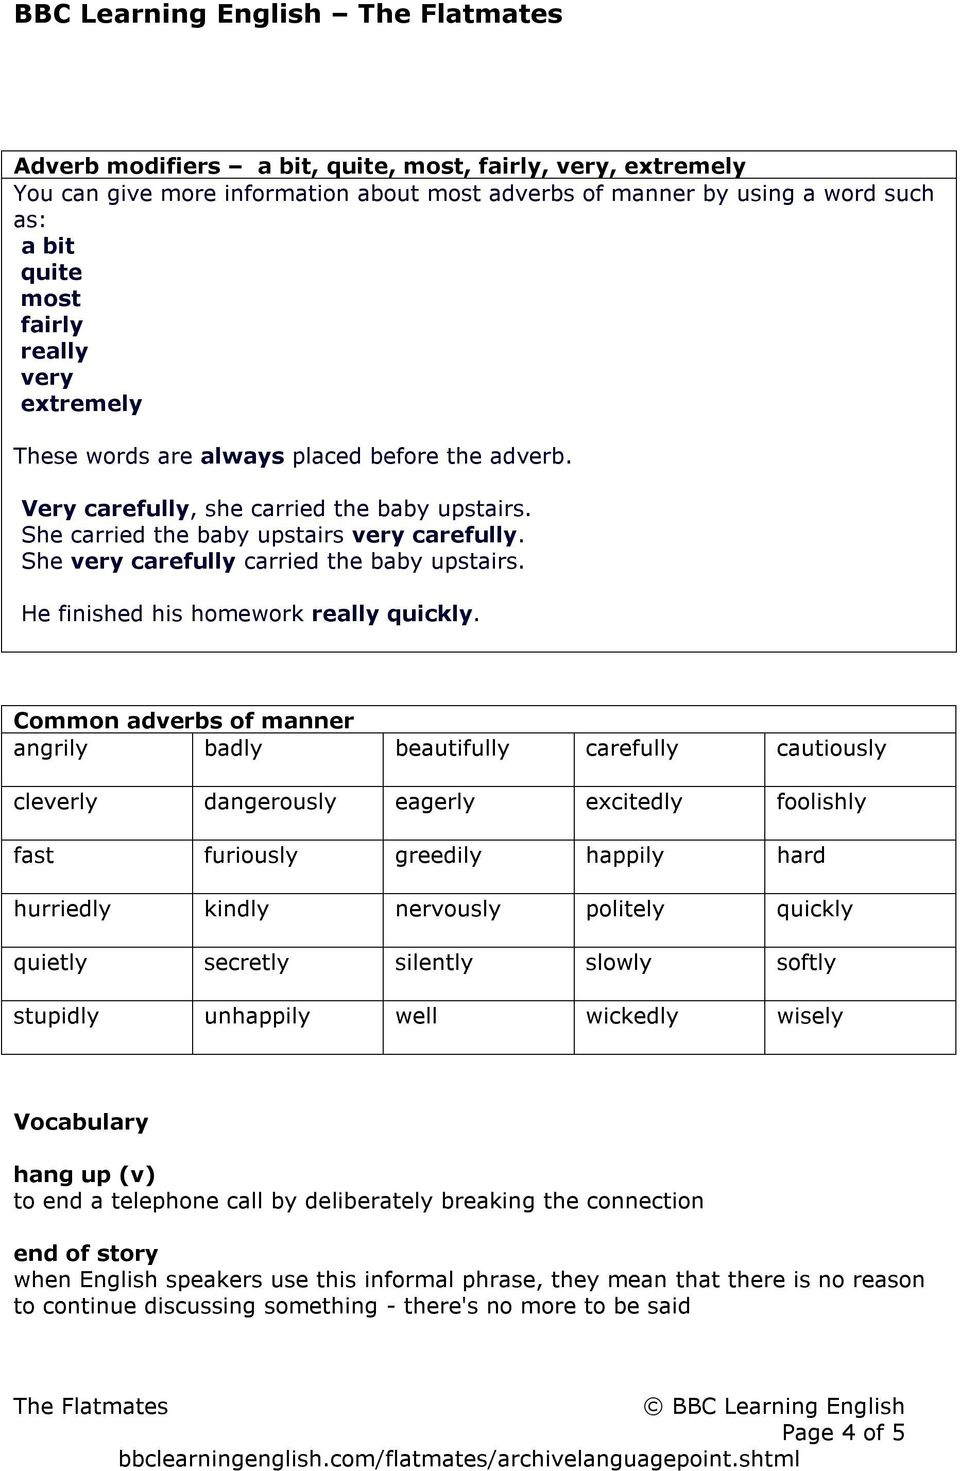 hight resolution of THE FLATMATES Language point: Adverbs of manner - PDF Free Download